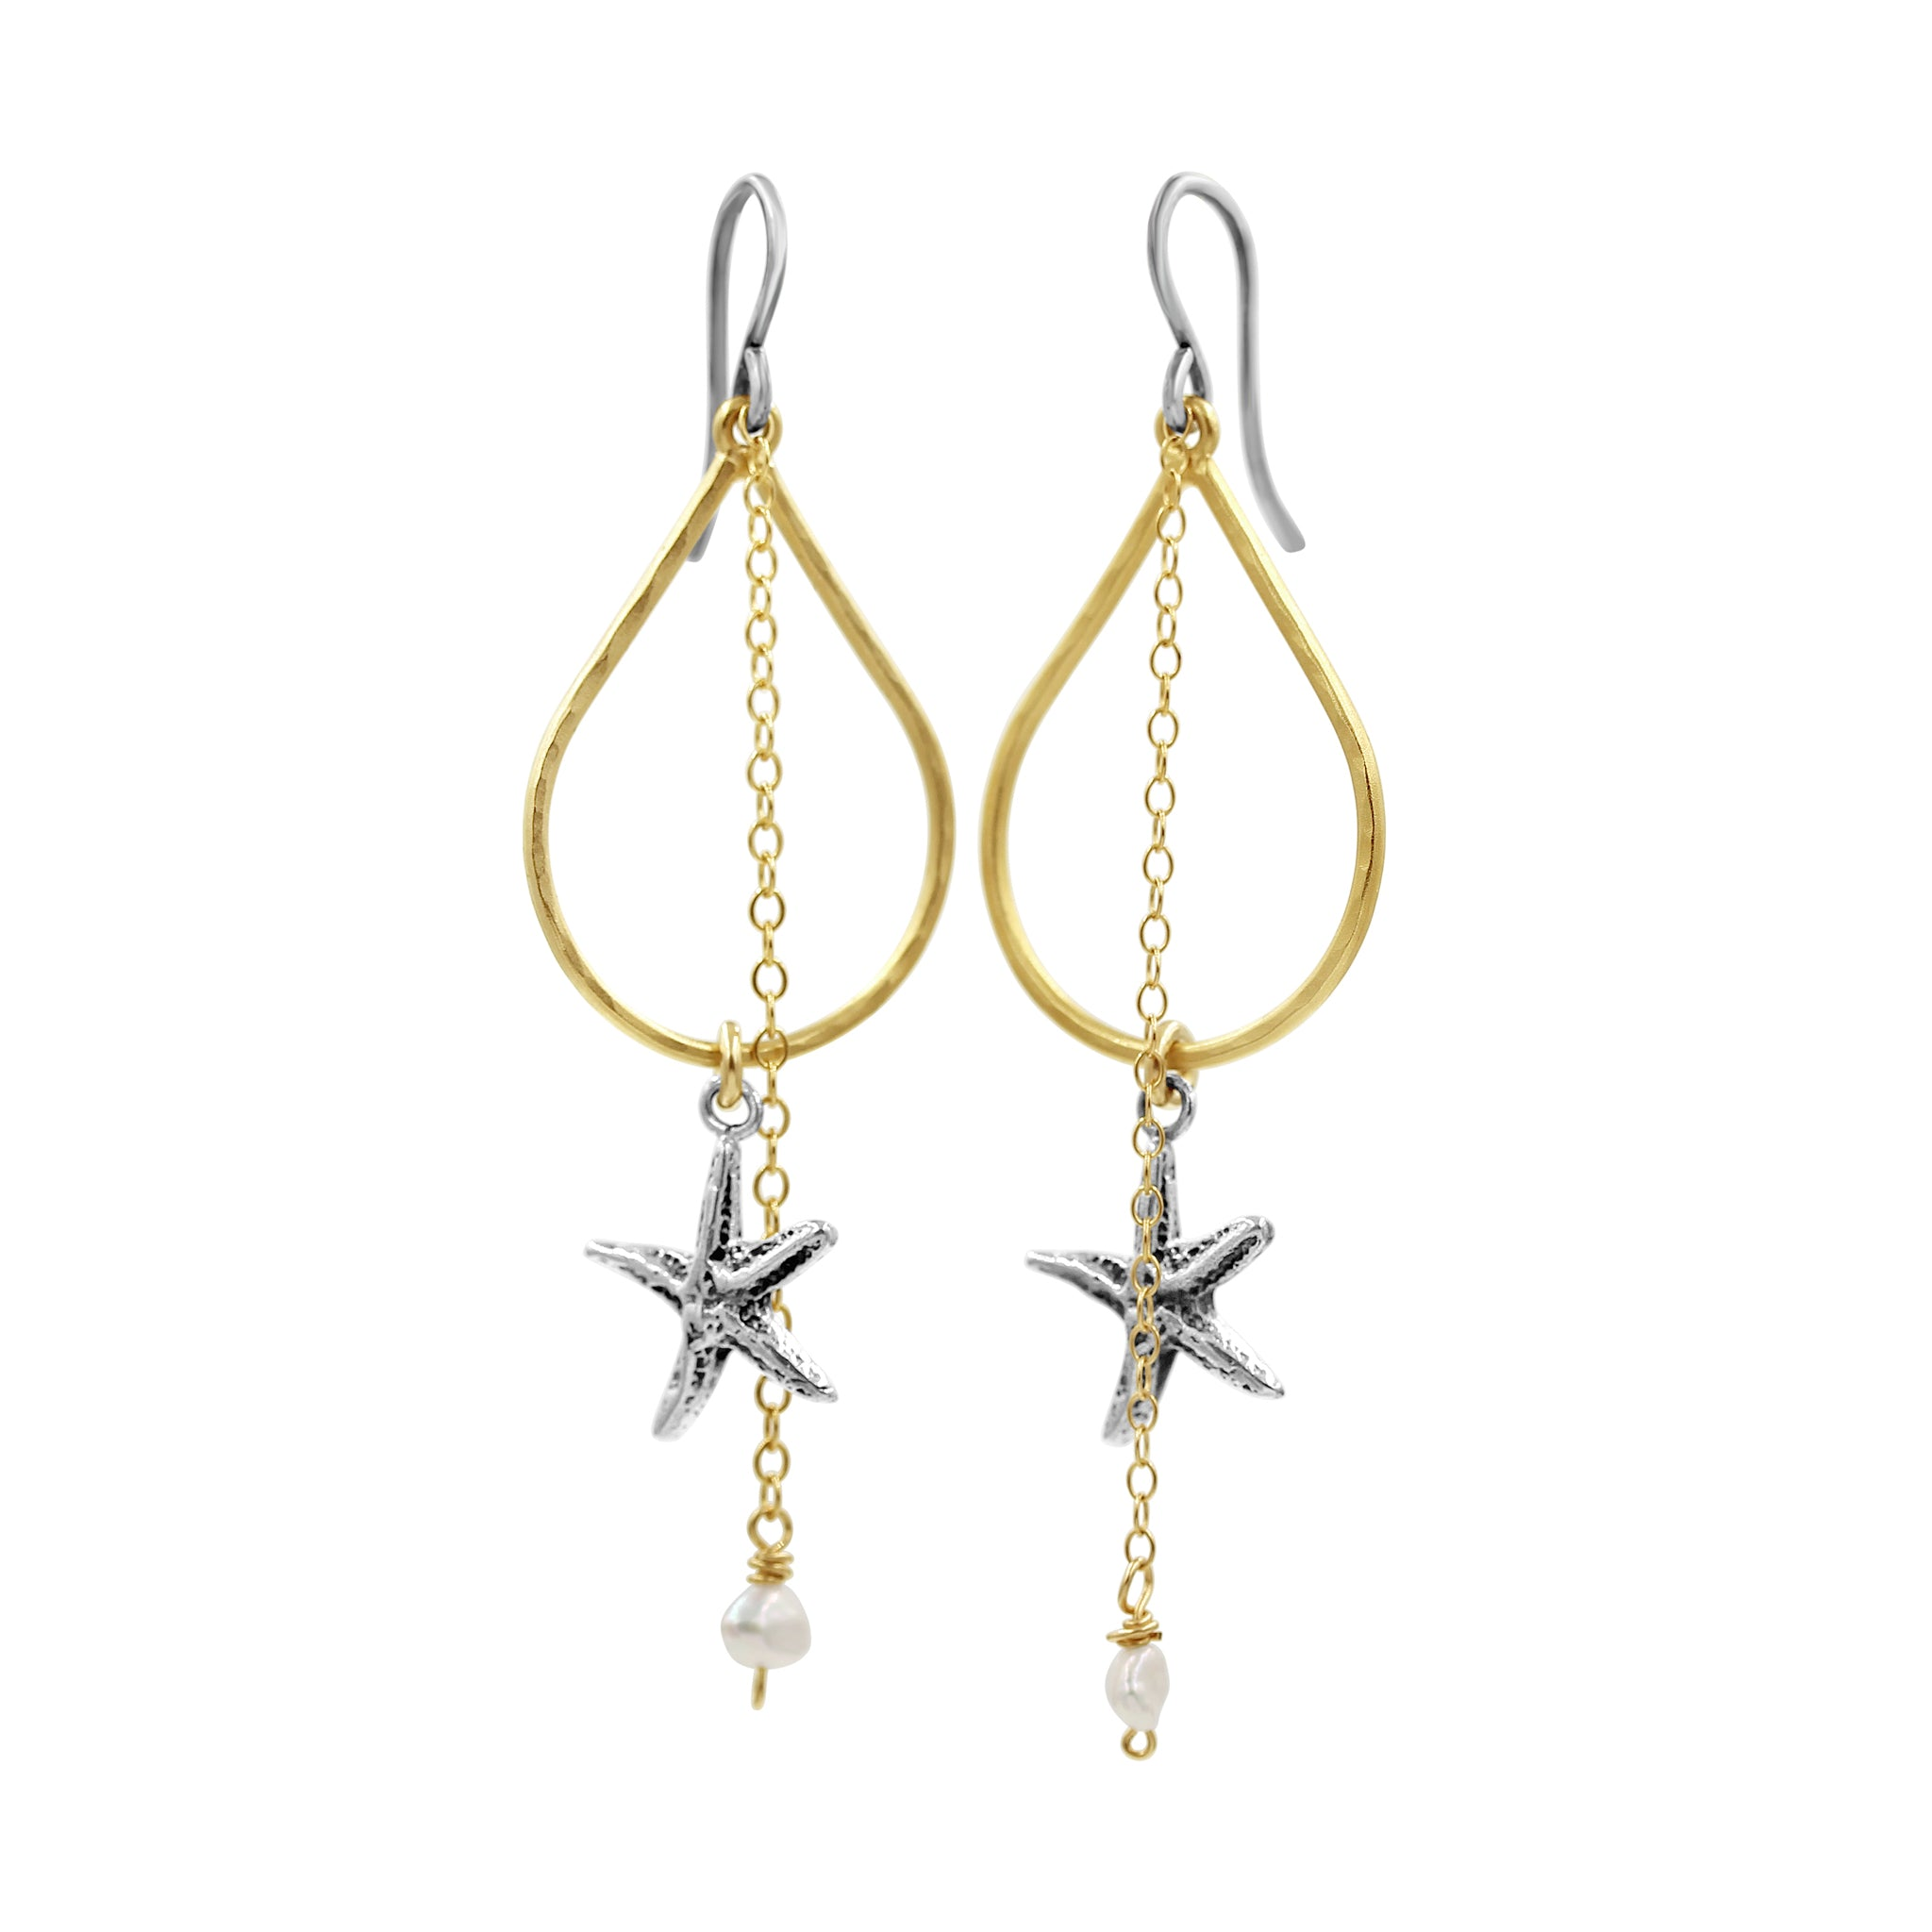 Double the Love Starfish Earrings - Sati Gems Hawaii Healing Crystal Gemstone Jewelry